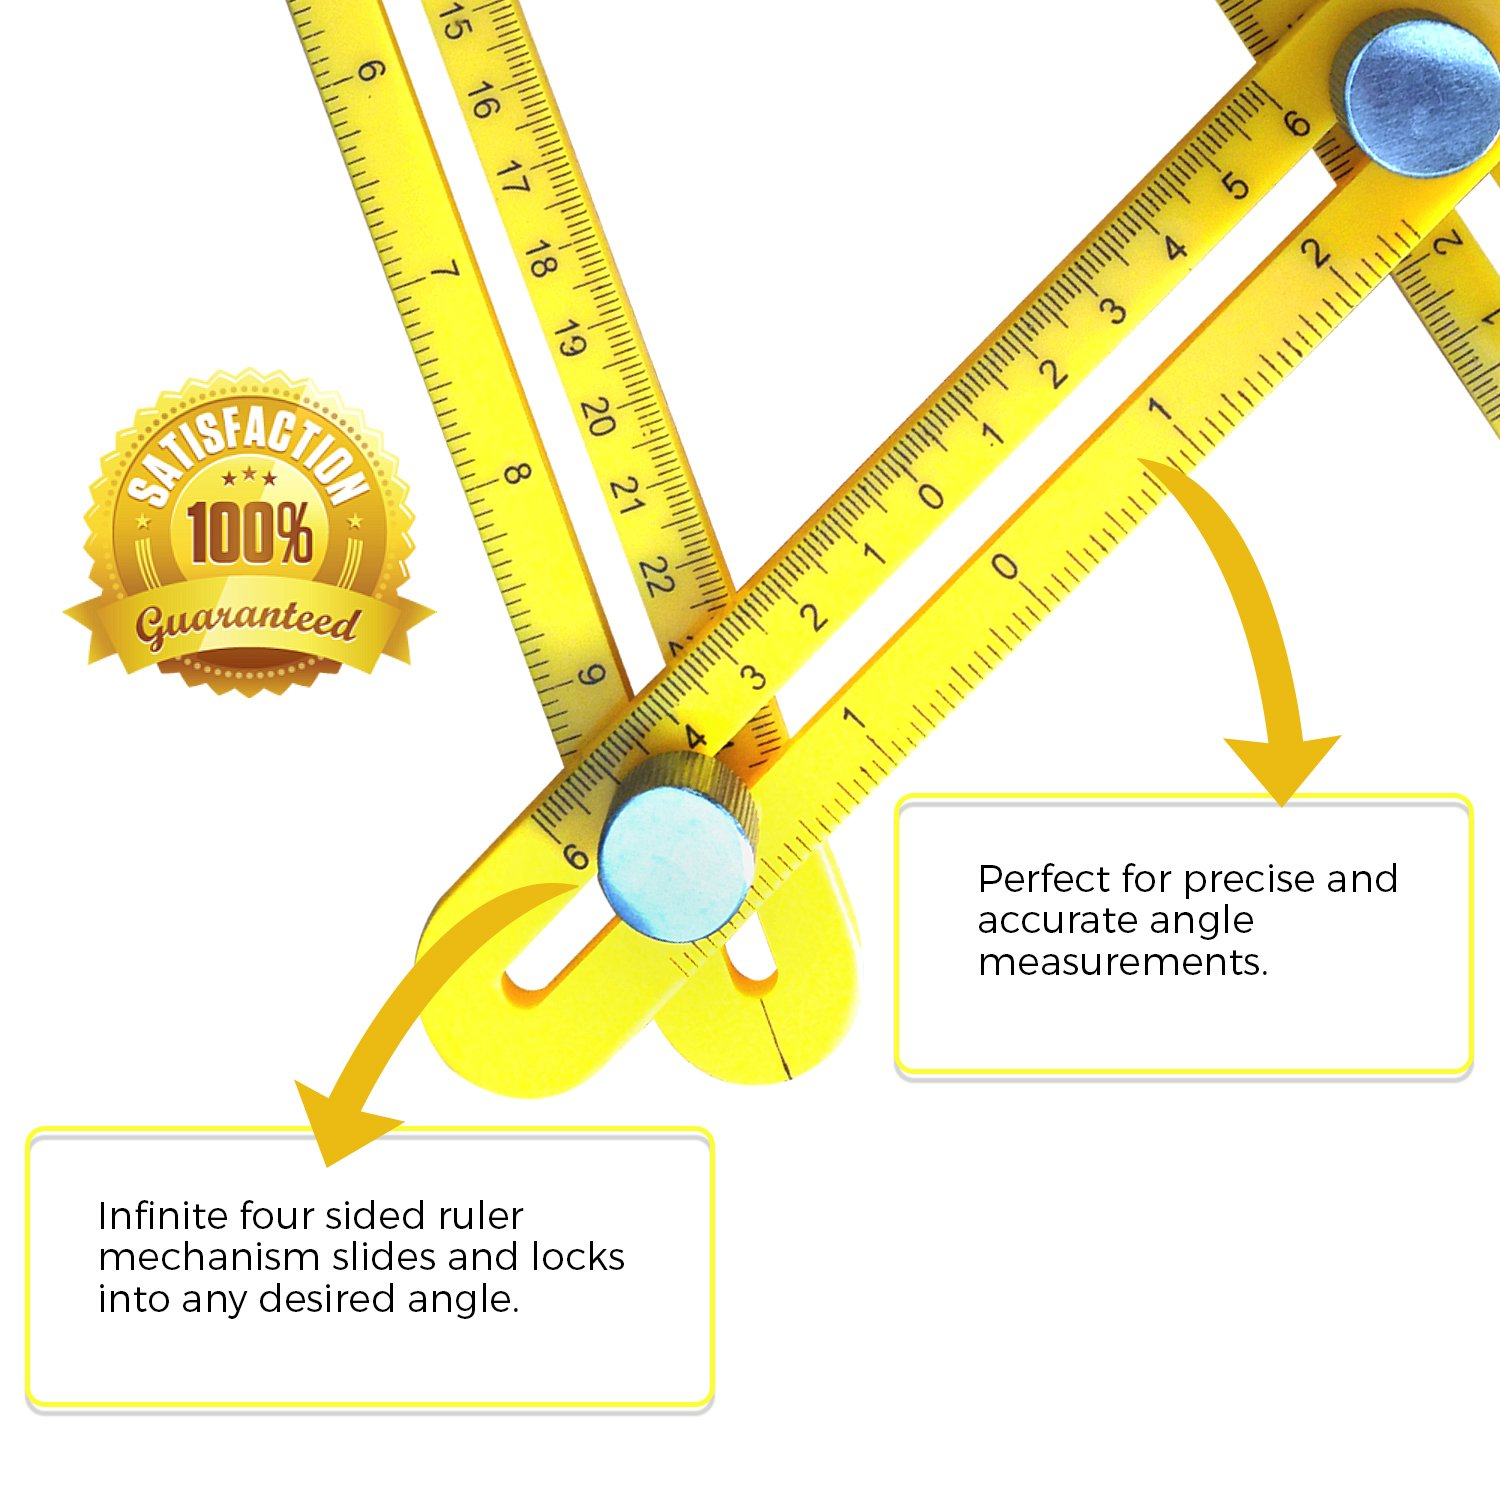 Multi Angle Measuring Ruler Best General Measurement Tool for Accurate Measurements Metal knobs for Durable Performance Preferred by Builders and Carpenters Hard Hat Tools ANGLE-1